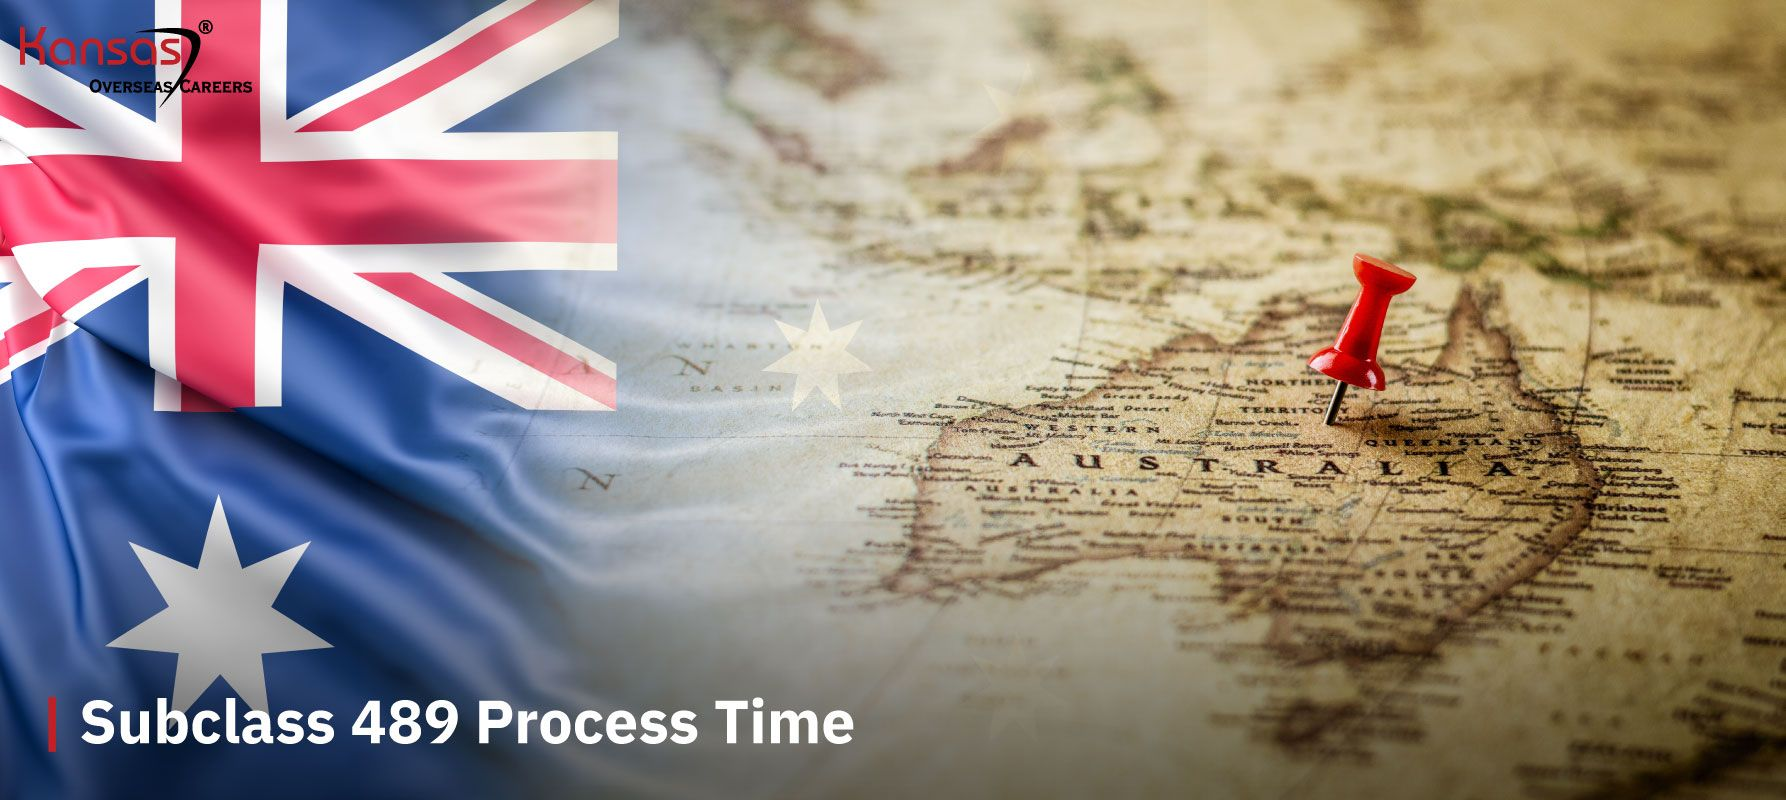 Processing-Time-for-the-Subclass-489-Visa-1